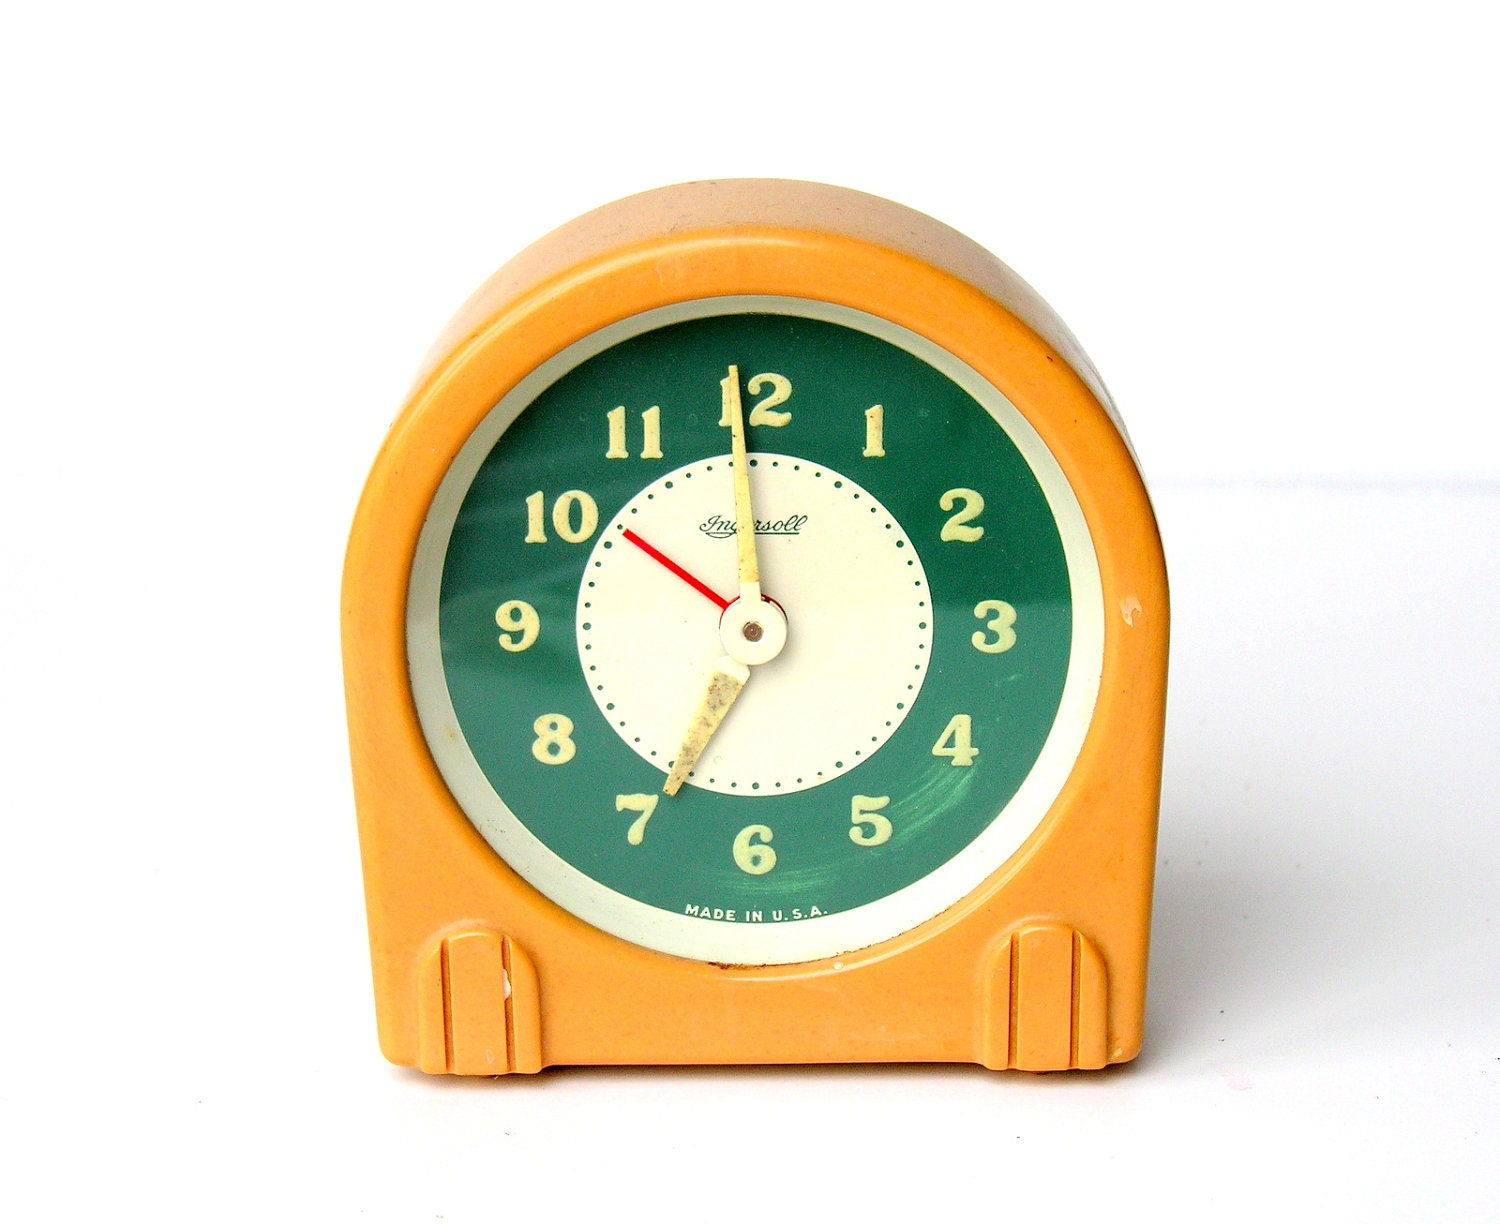 Vintage art deco ingersoll alarm clock early plastic Art deco alarm clocks